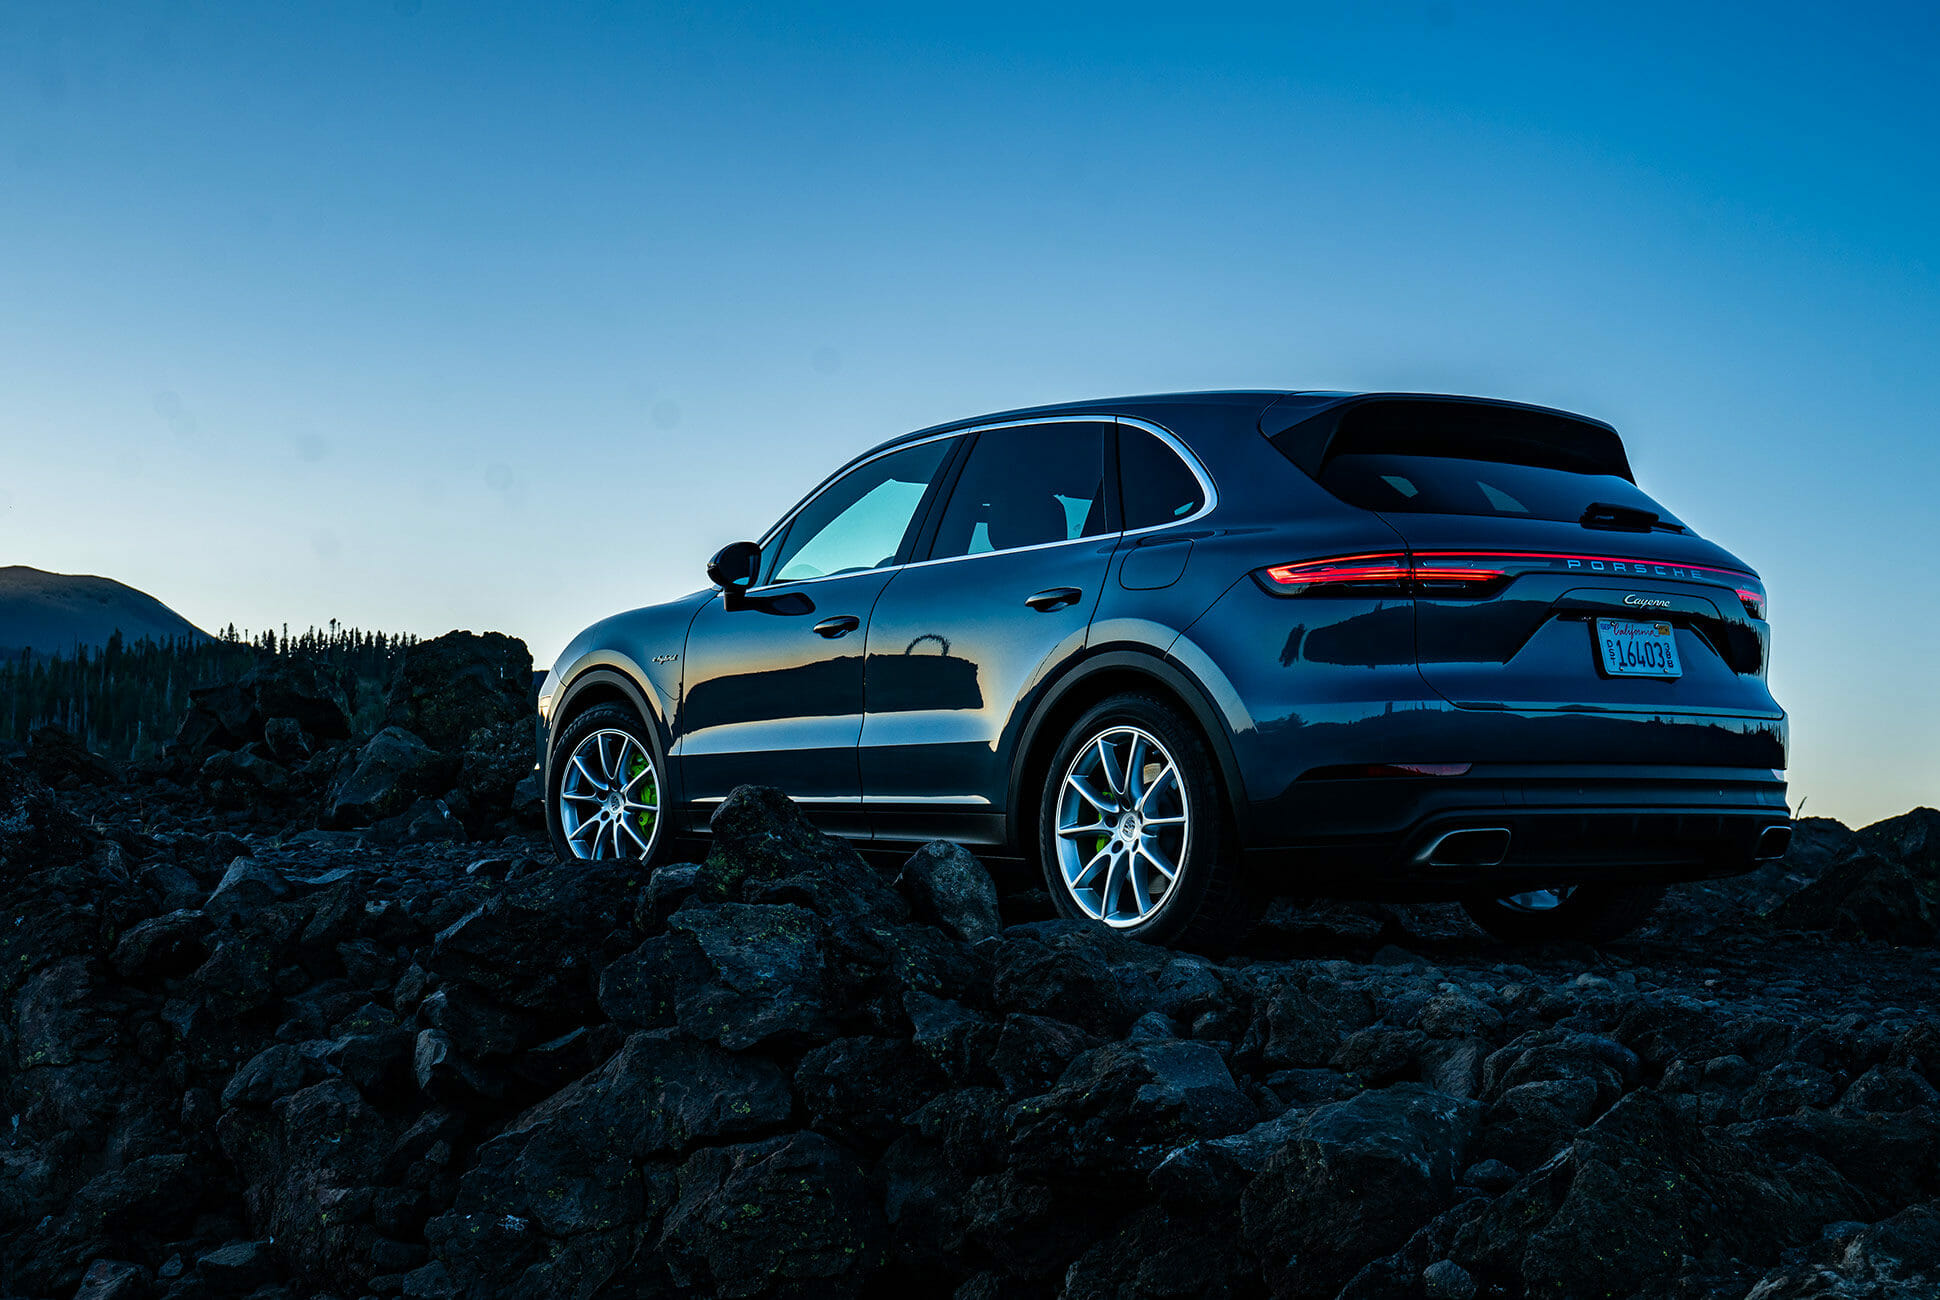 Pair-of-High-Tech-Porsche-Cayenne-Hybrids-gear-patrol-lead-slide-3